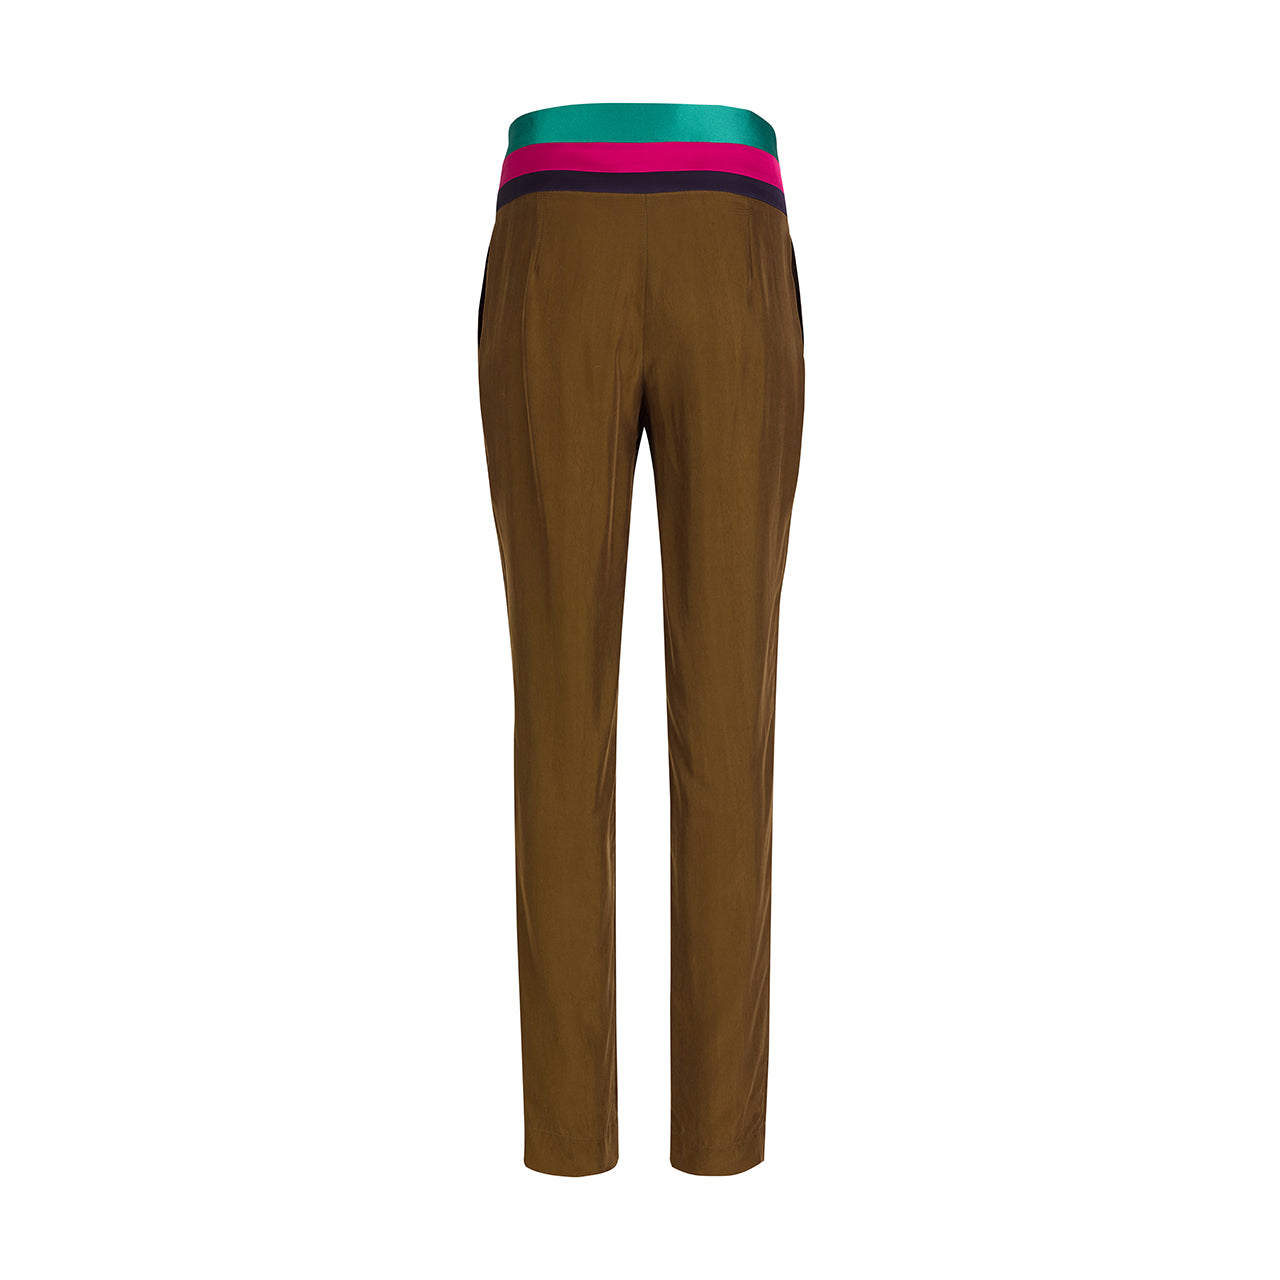 Colored Waistband Pants